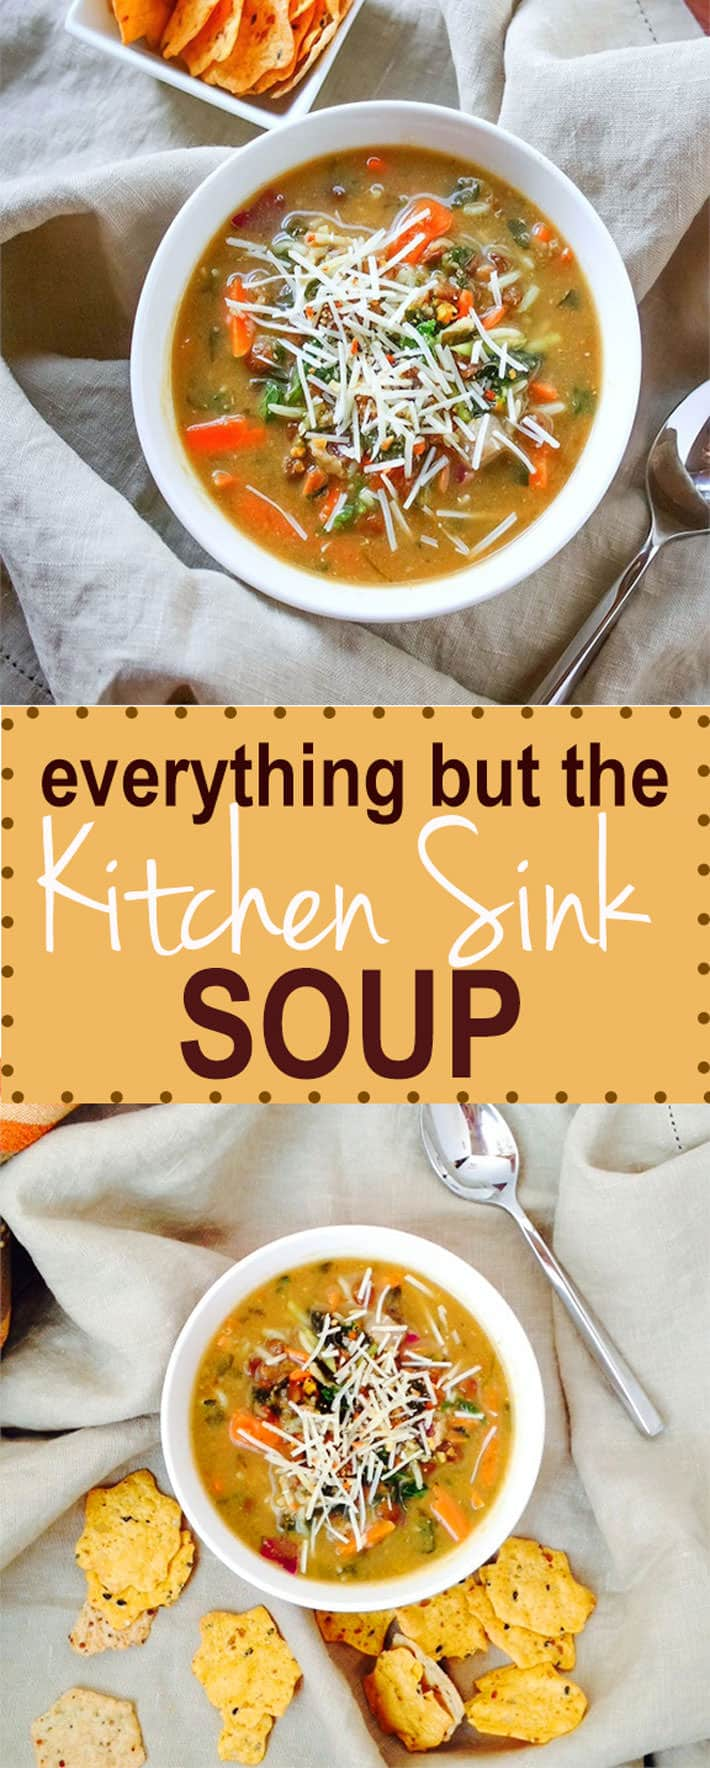 Everything But The Kitchen Sink everything but the kitchen sink soup {gluten free}